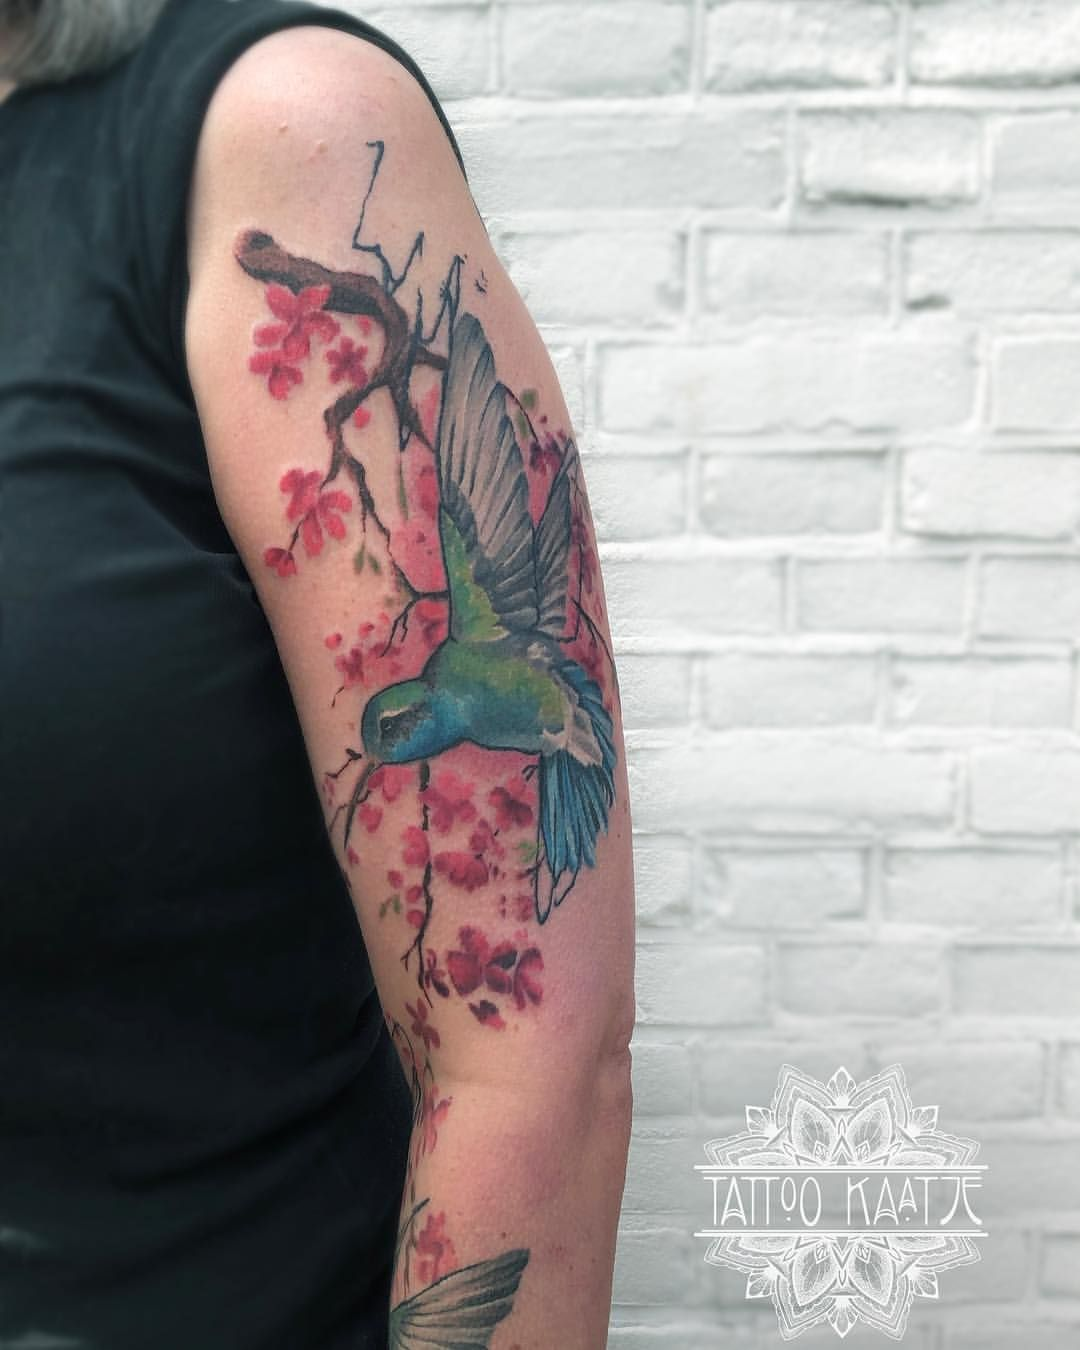 Marika Kaatje Op Instagram Did You Know The Hummingbirds Hum Because They Dont Know The Lyrics Hummingb Hummingbird Tattoo Tattoo Work Tattoos